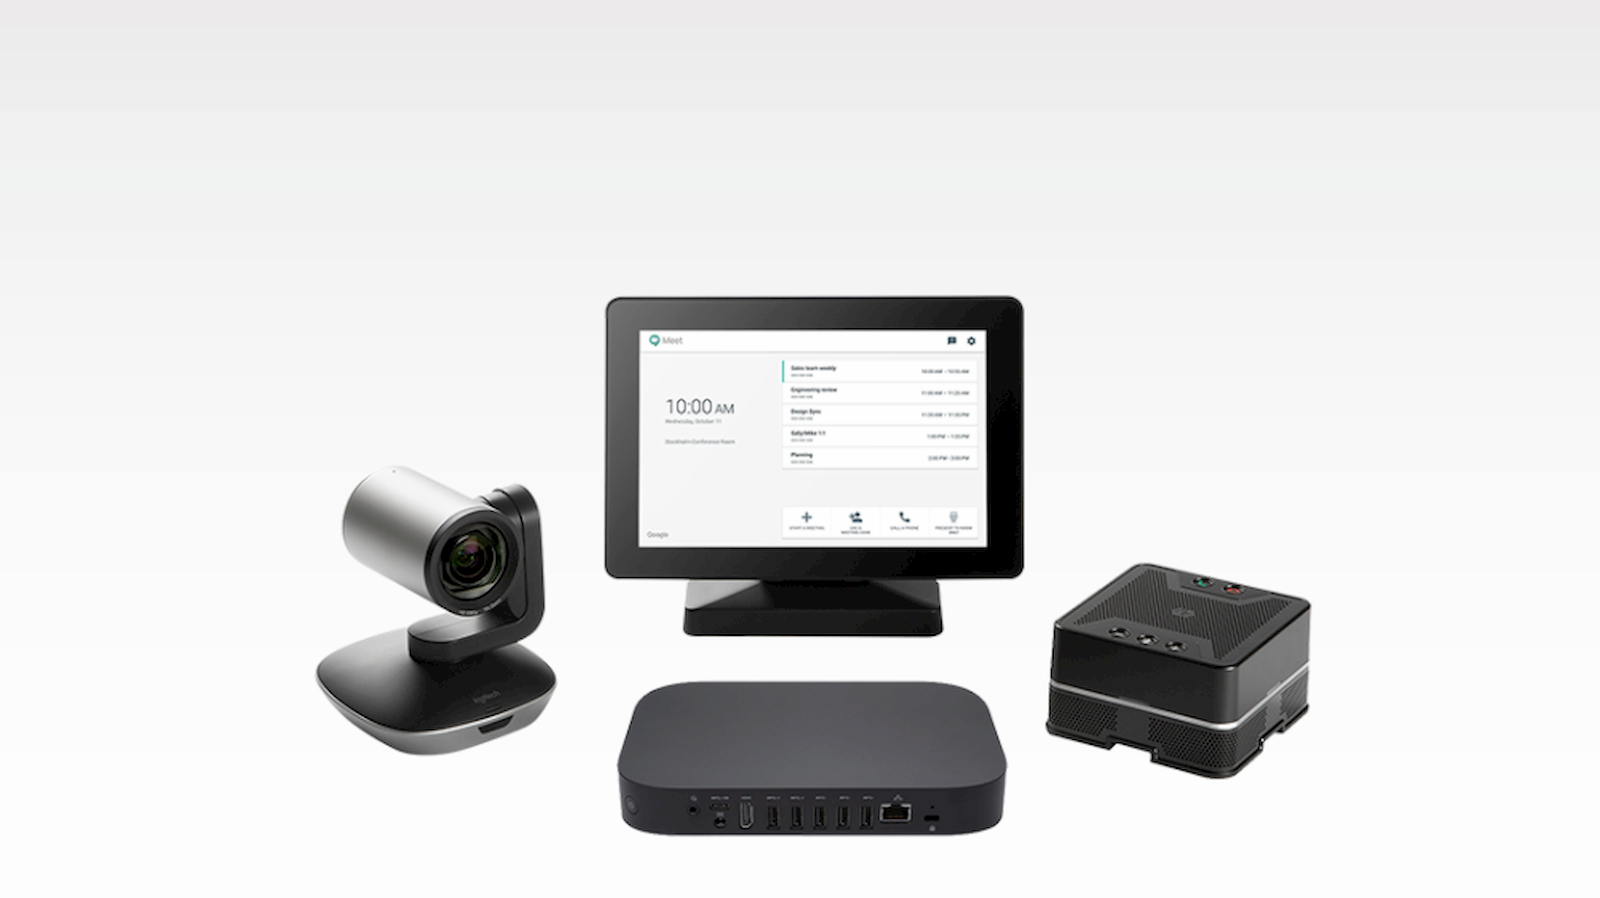 ASUS debuts Google Meet kit with 4K cameras and redesigned Chromebox